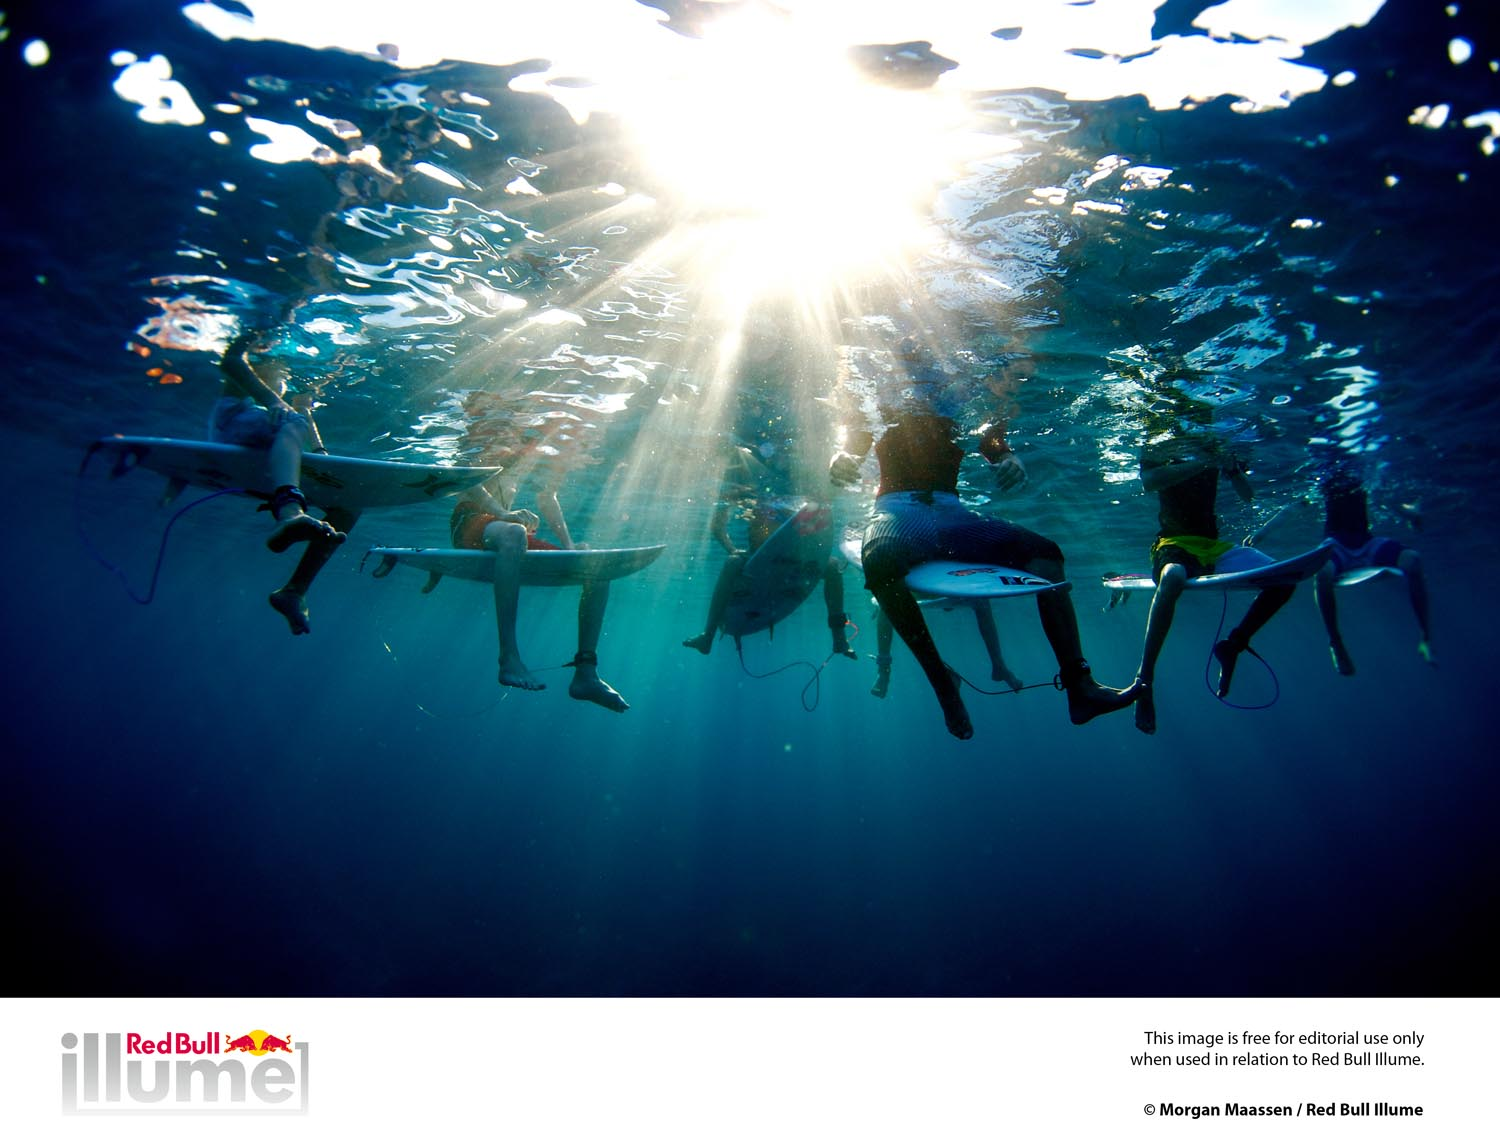 © Morgan Maassen / 2013 Red Bull Illume Lifestyle Category Winning Photo